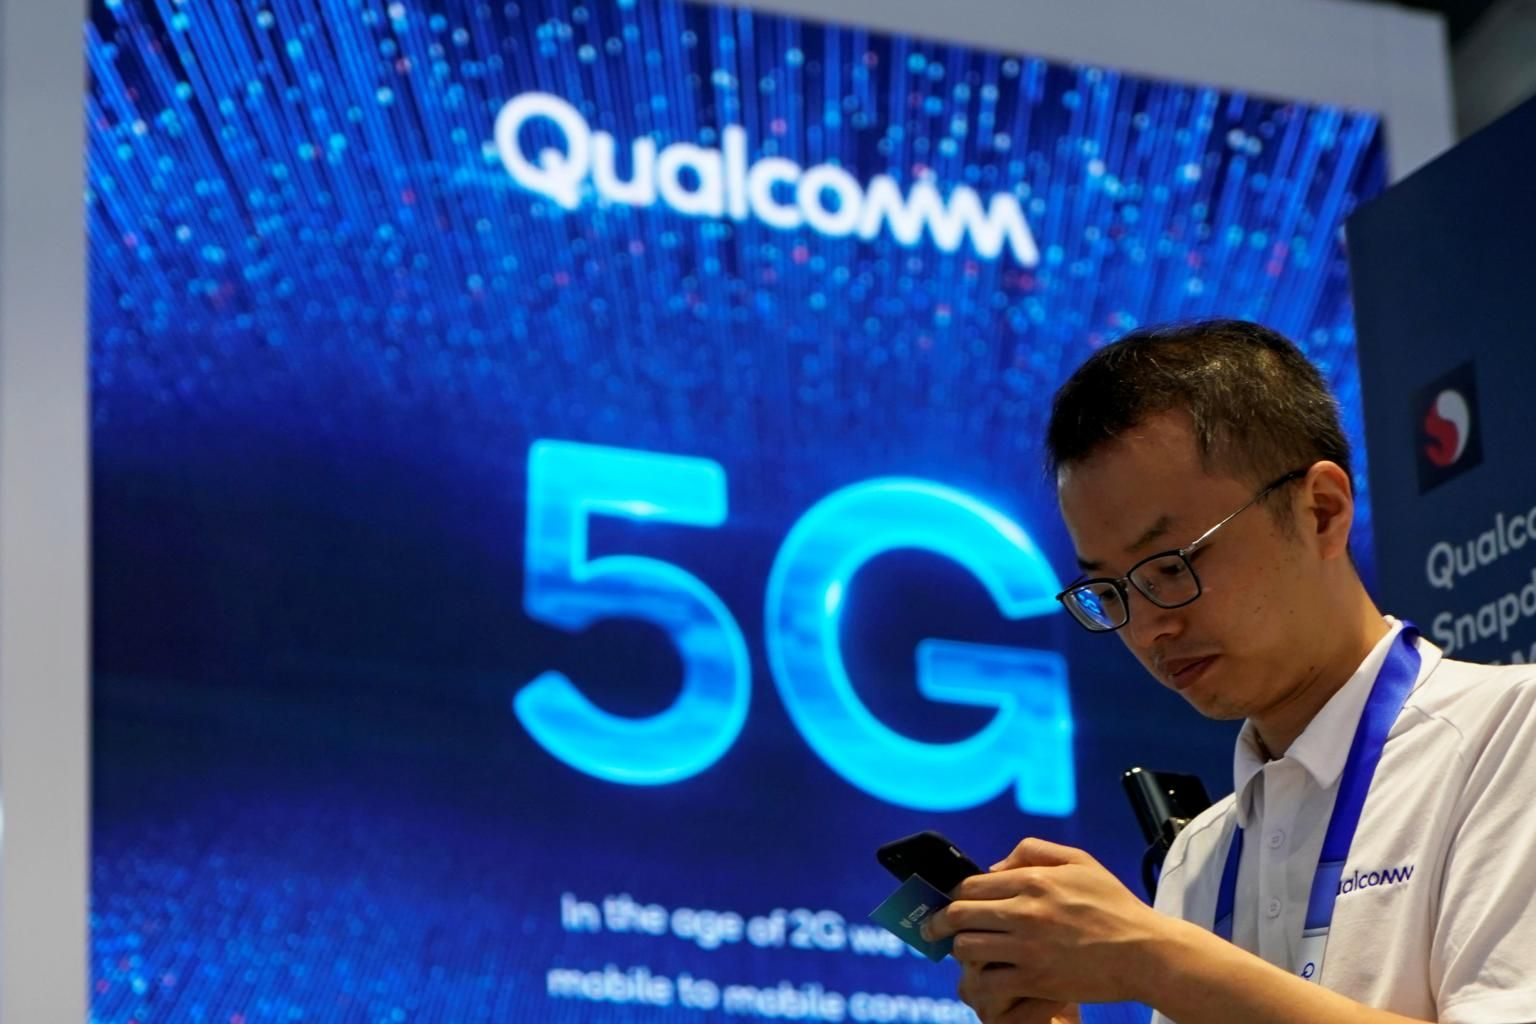 Qualcomm ramps up 5G smartphone and laptop bets, Technology - THE BUSINESS  TIMES